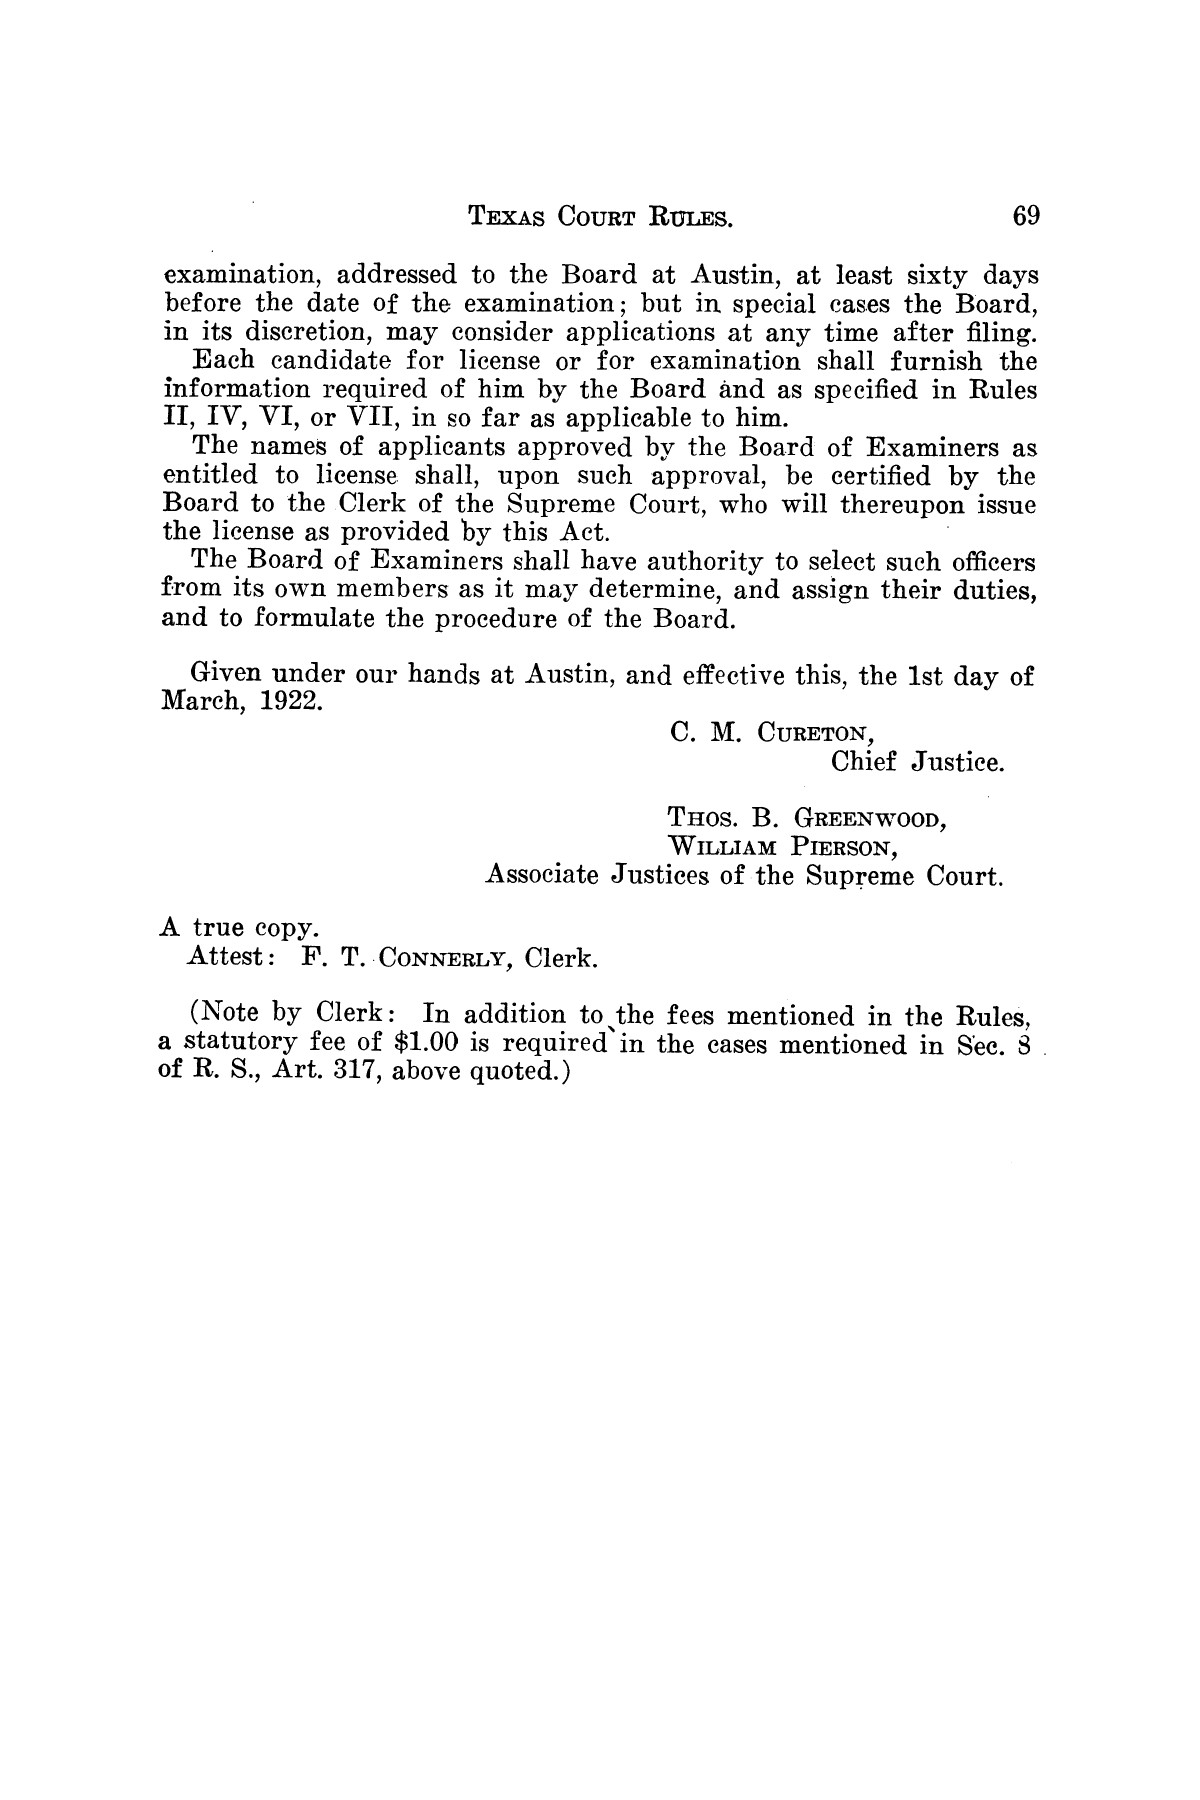 Gammel's Rules of the Courts of Texas                                                                                                      [Sequence #]: 69 of 70